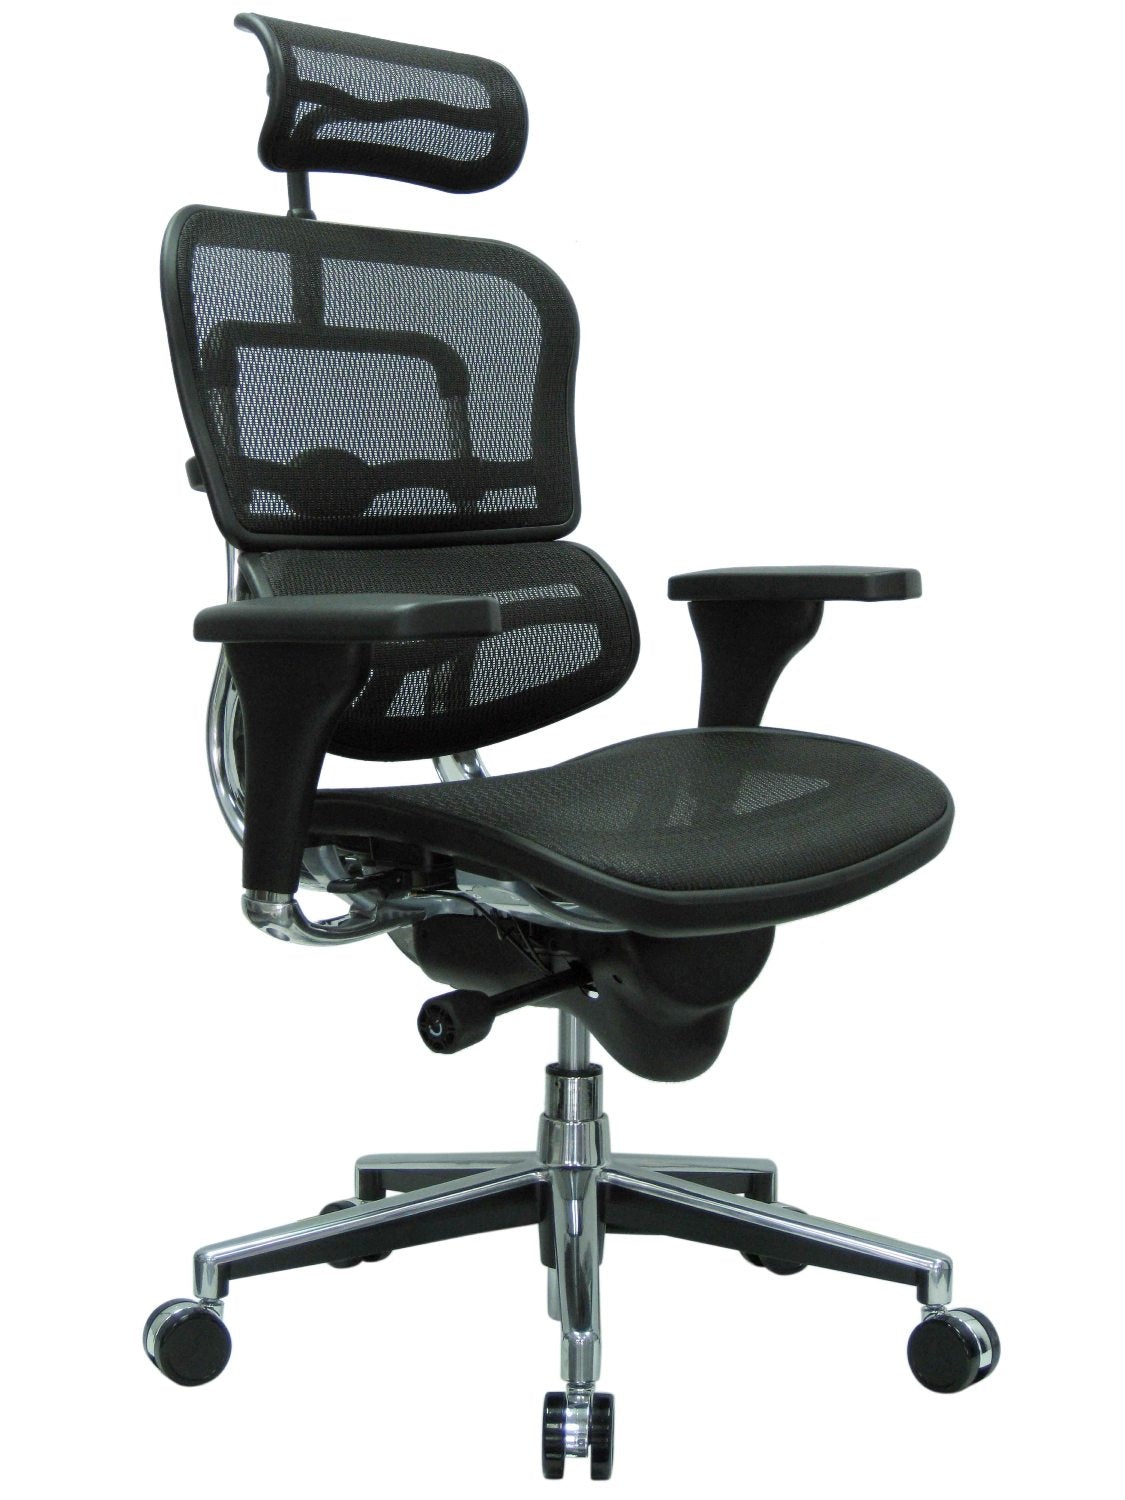 ErgoHuman Mesh High Back Executive Chair - taylor ray decor